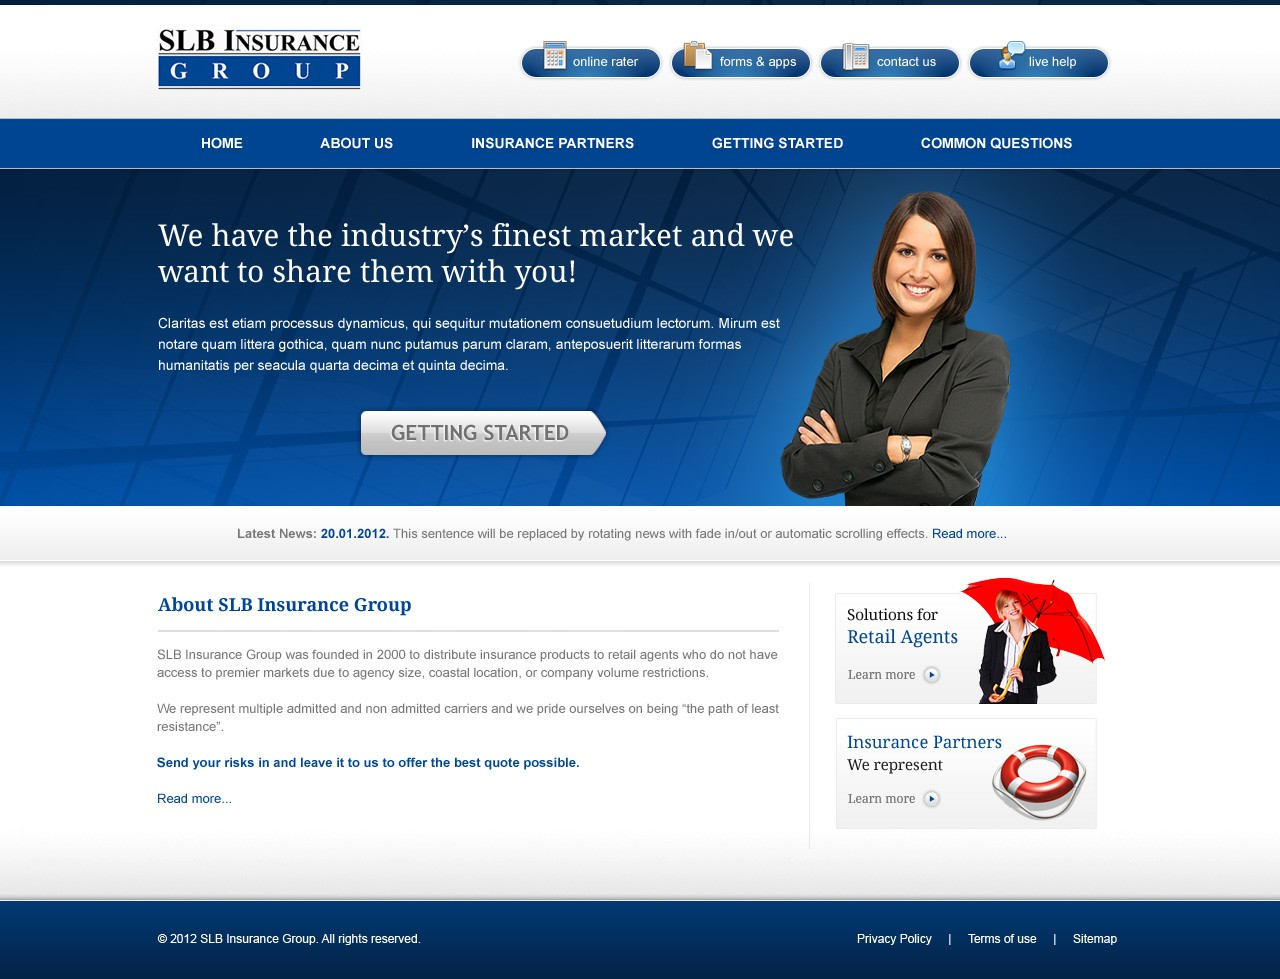 Create the next website design for SLB Insurance Group